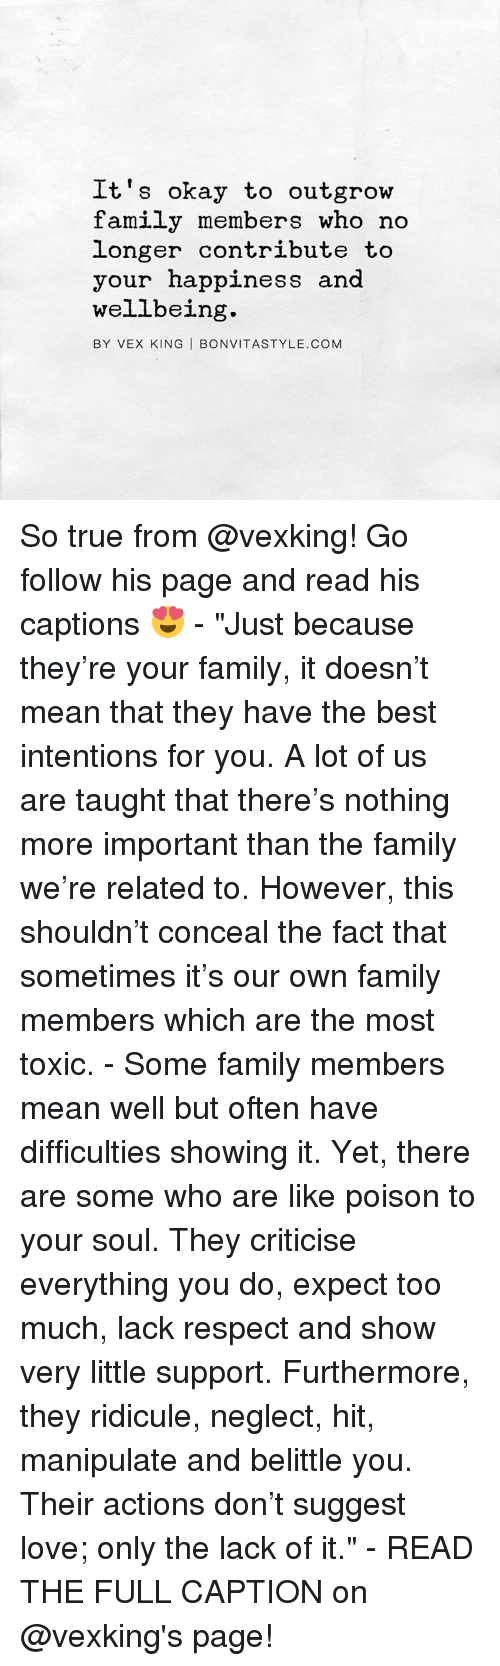 "Family, Memes, and Respect: It's okay to outgrow  family members who no  longer contribute to  your happiness and  wellbeing  BY VEX KING I BONVITASTYLE.COM So true from @vexking! Go follow his page and read his captions 😍 - ""Just because they're your family, it doesn't mean that they have the best intentions for you. A lot of us are taught that there's nothing more important than the family we're related to. However, this shouldn't conceal the fact that sometimes it's our own family members which are the most toxic. - Some family members mean well but often have difficulties showing it. Yet, there are some who are like poison to your soul. They criticise everything you do, expect too much, lack respect and show very little support. Furthermore, they ridicule, neglect, hit, manipulate and belittle you. Their actions don't suggest love; only the lack of it."" - READ THE FULL CAPTION on @vexking's page!"